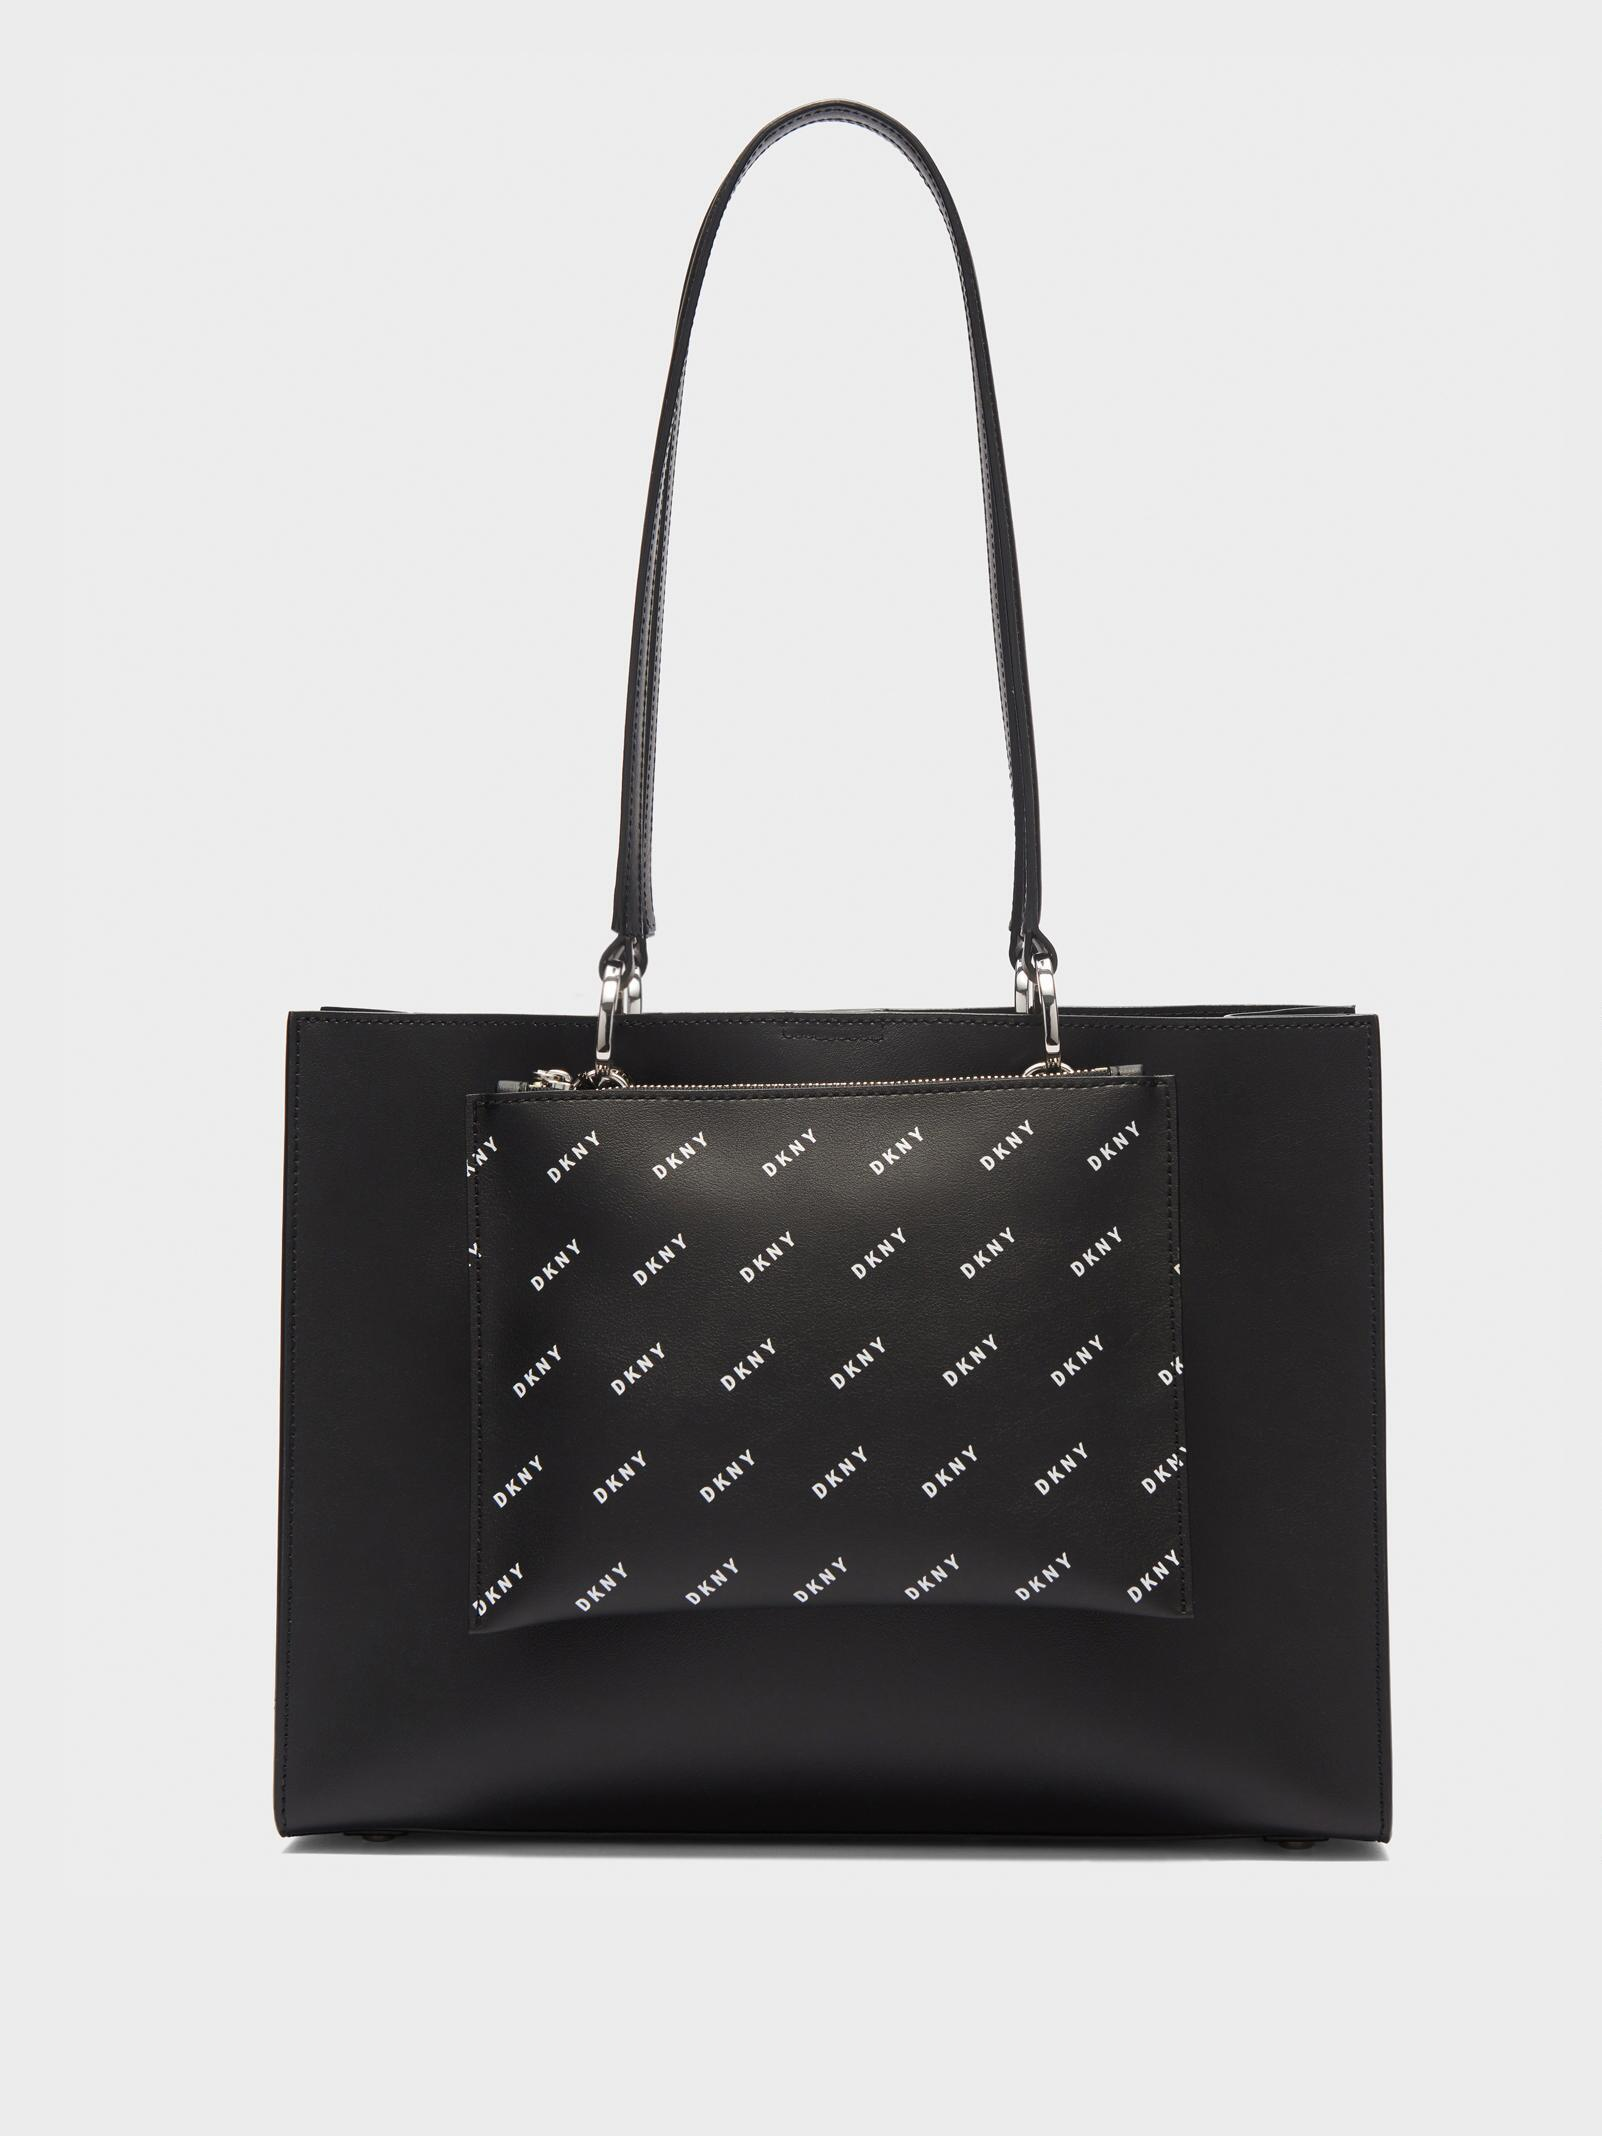 Lyst - DKNY Mott Large Tote With Printed Logo Pouch in Black 96bdf50228a39